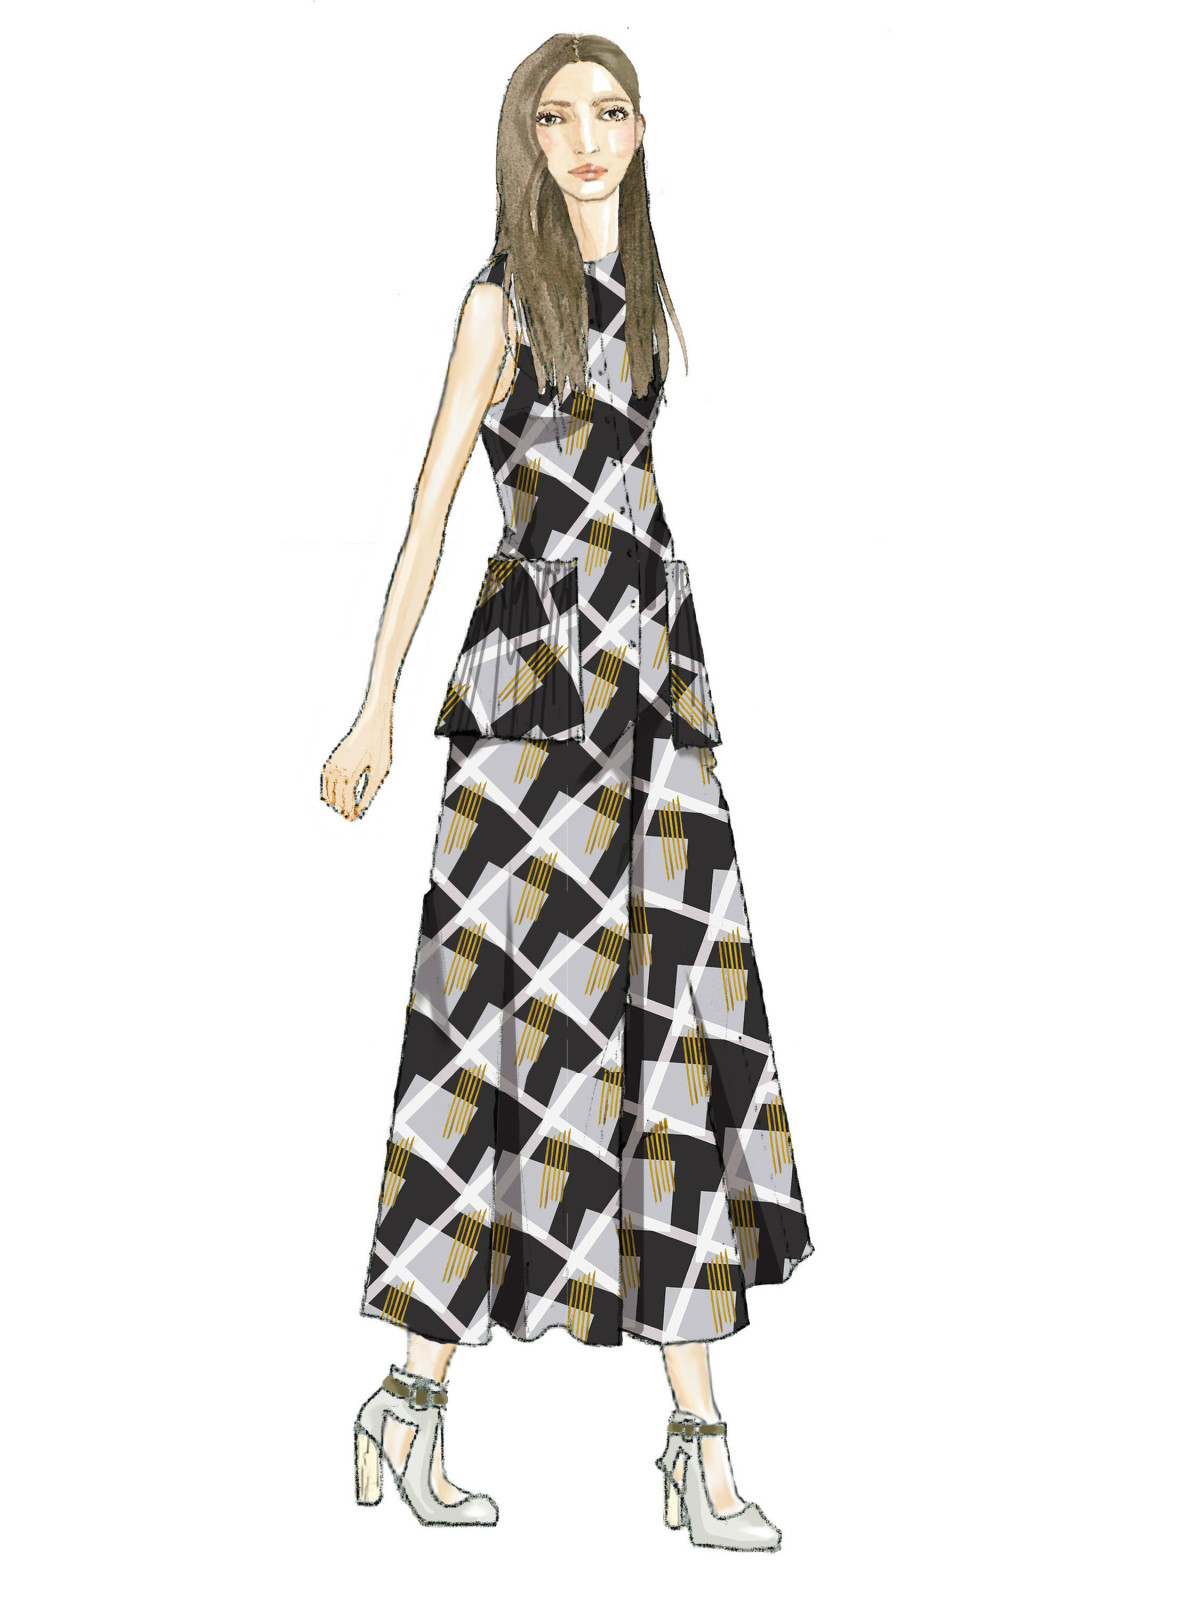 Suno inspiration sketch New York Fashion Week